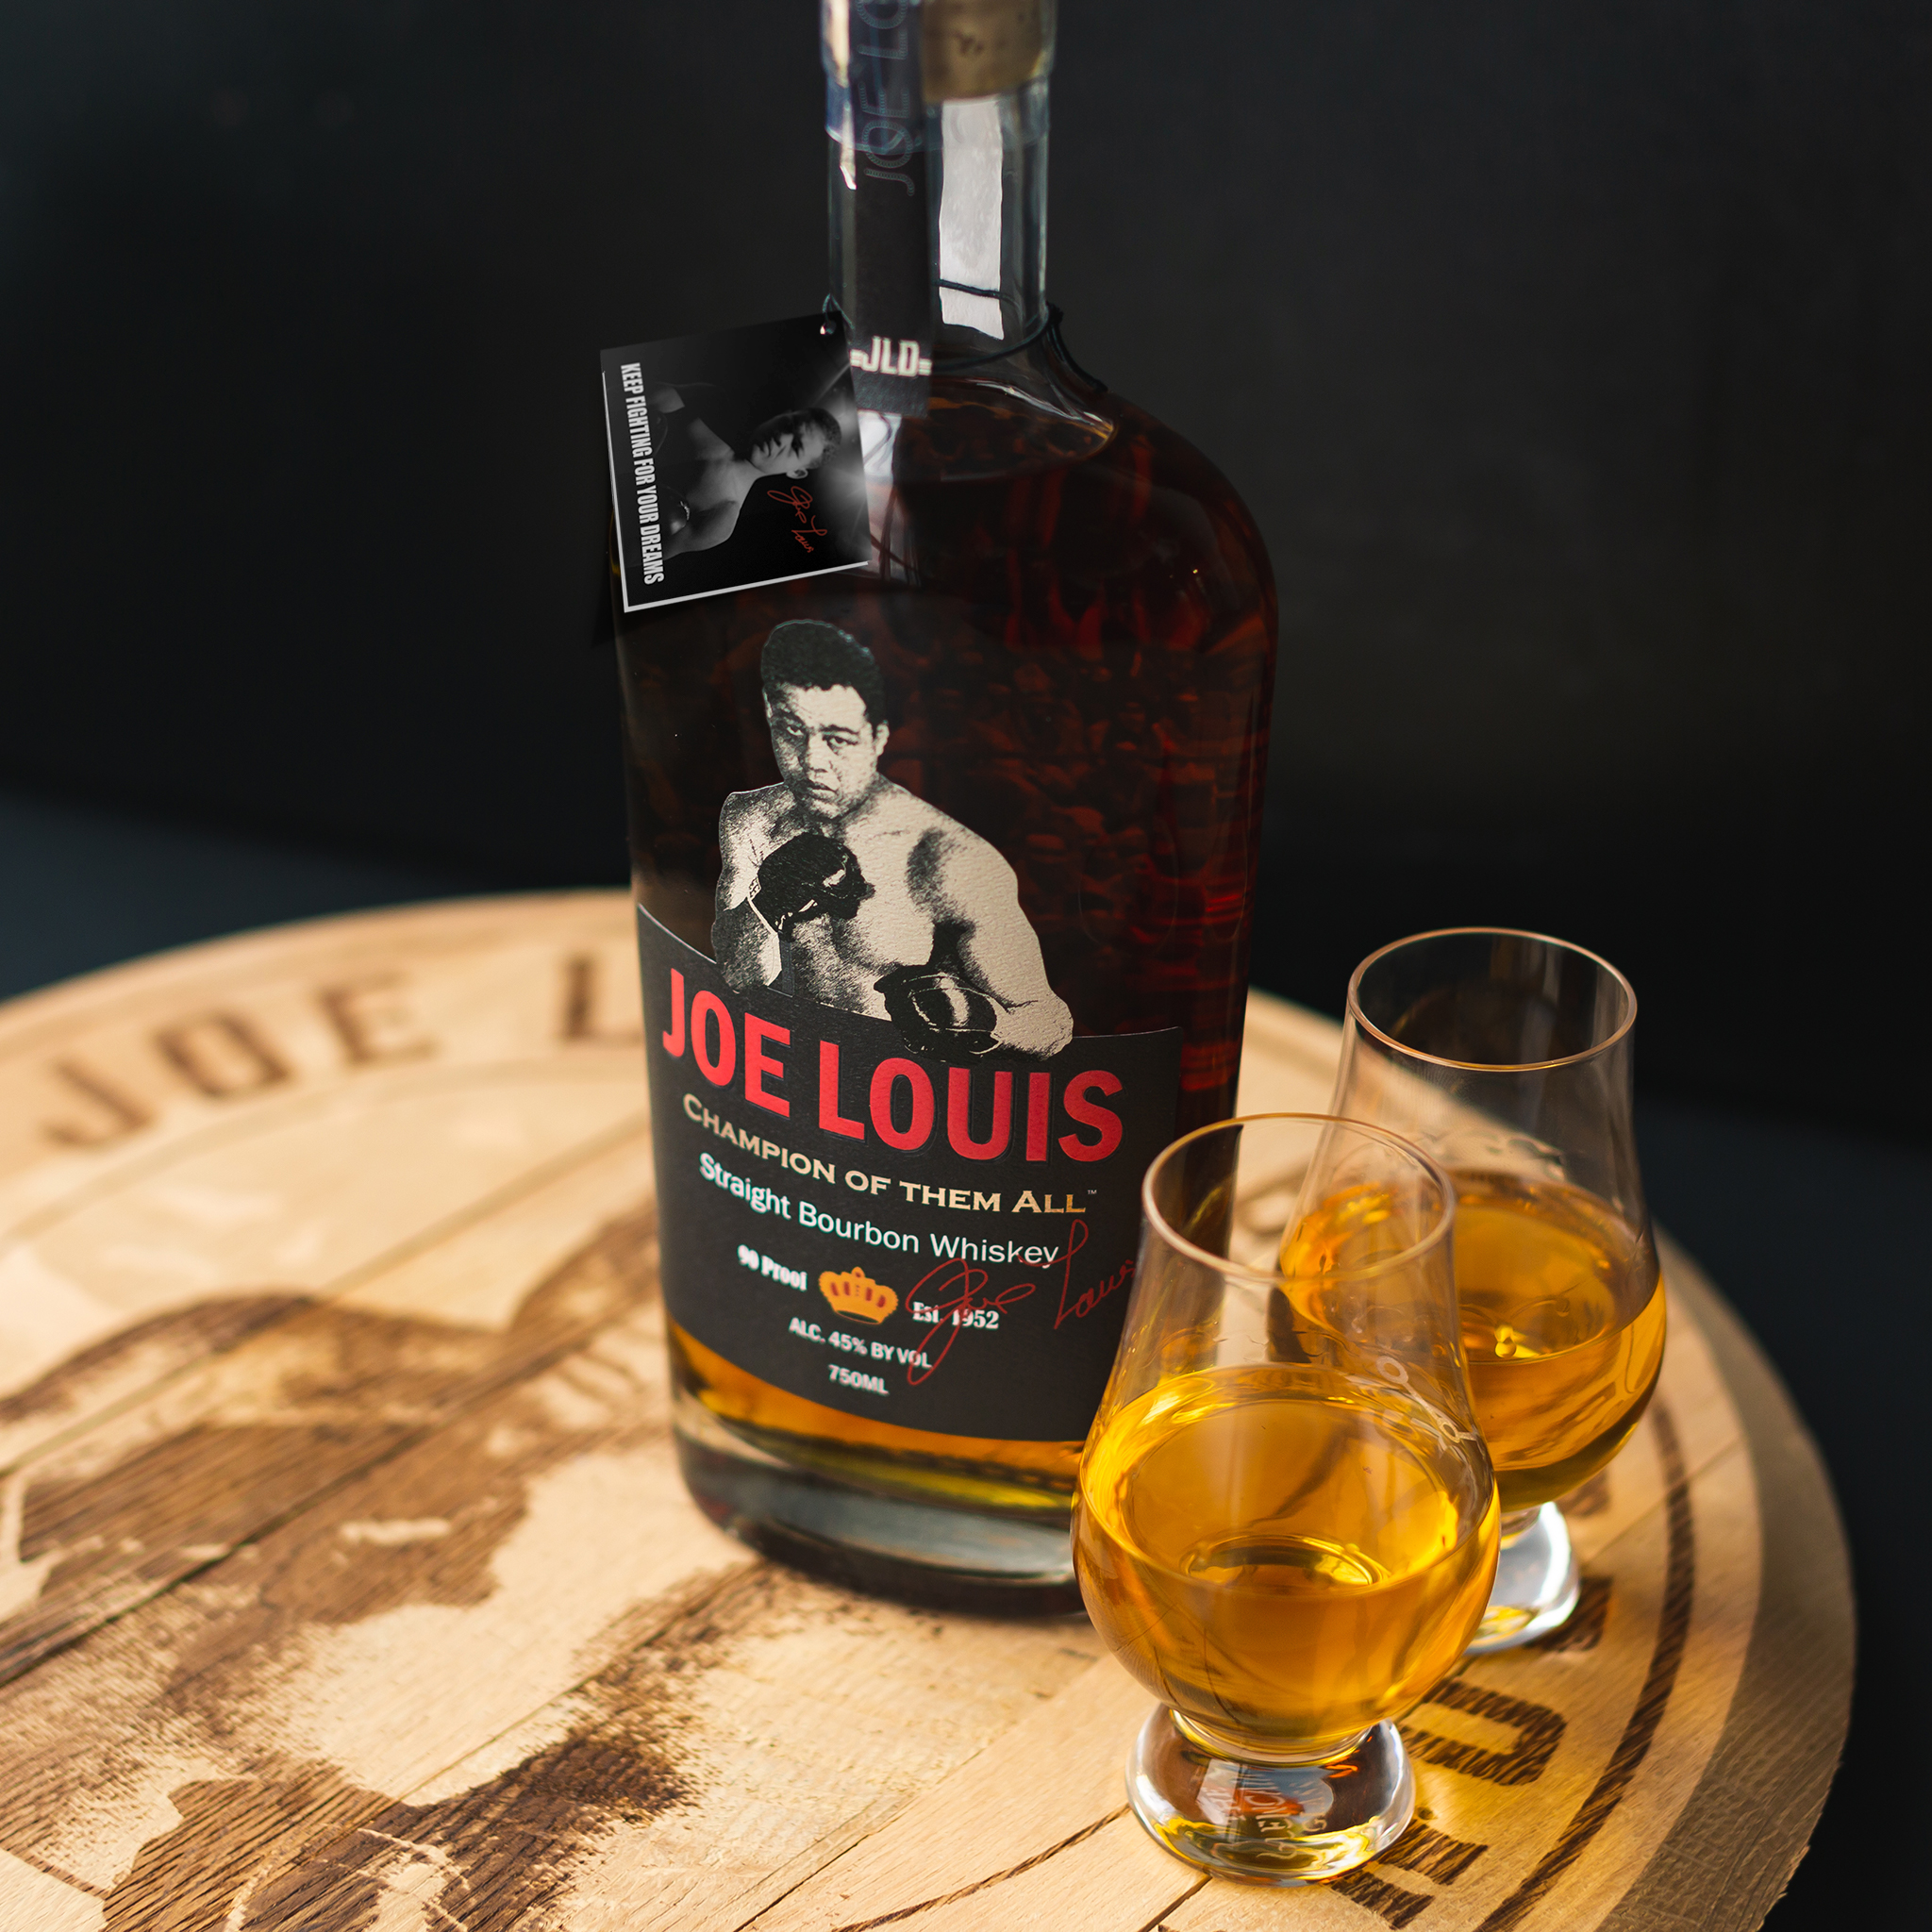 Joe Louis Bourbon Champion of them all - bottle and glass with two bourbon shots, black background